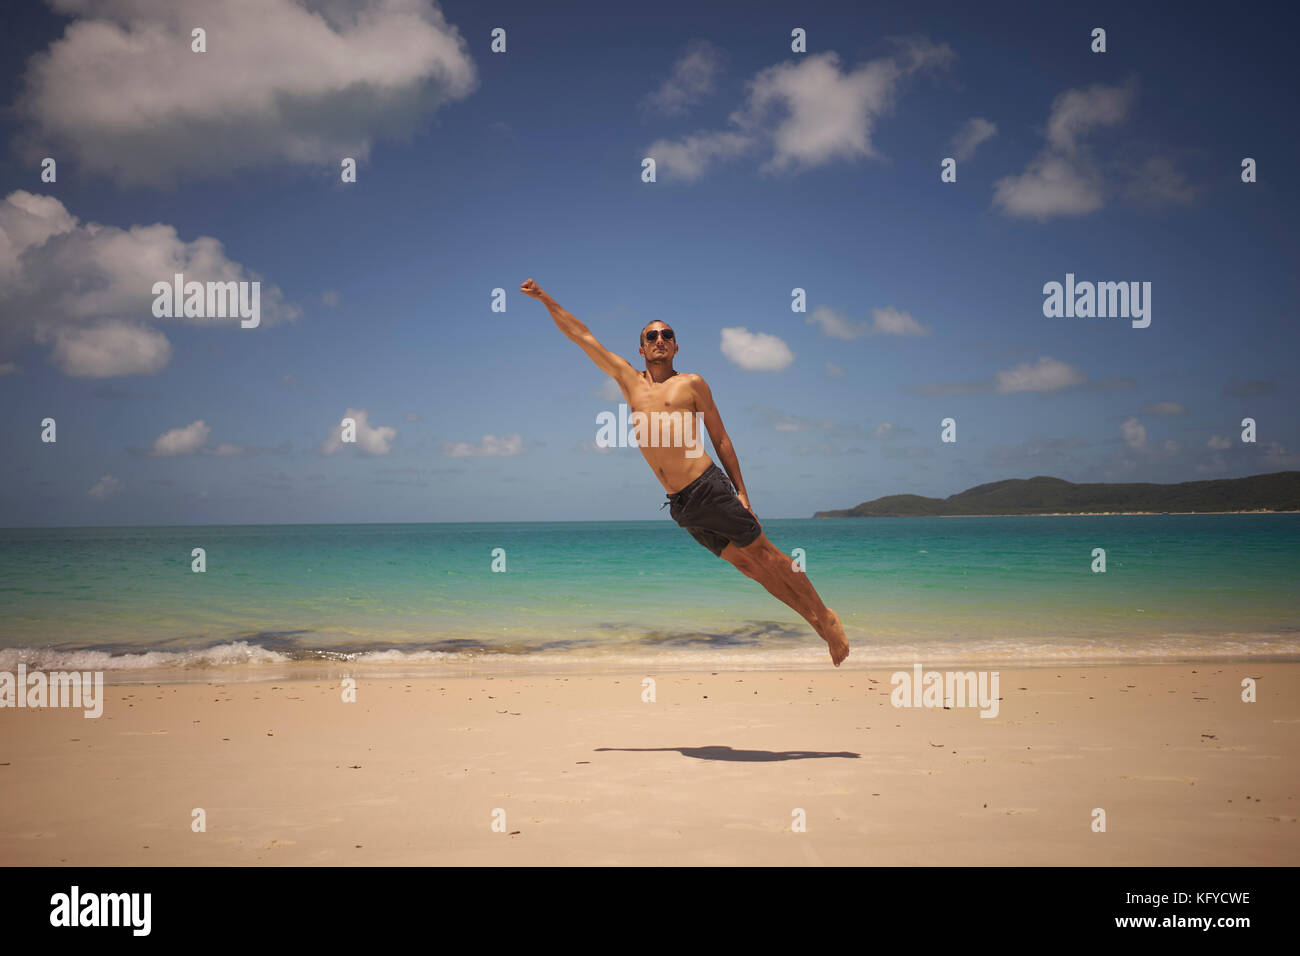 Man flying like superman stock photos man flying like superman young man in sunglasses is flying like a superman on the beach in the air publicscrutiny Images